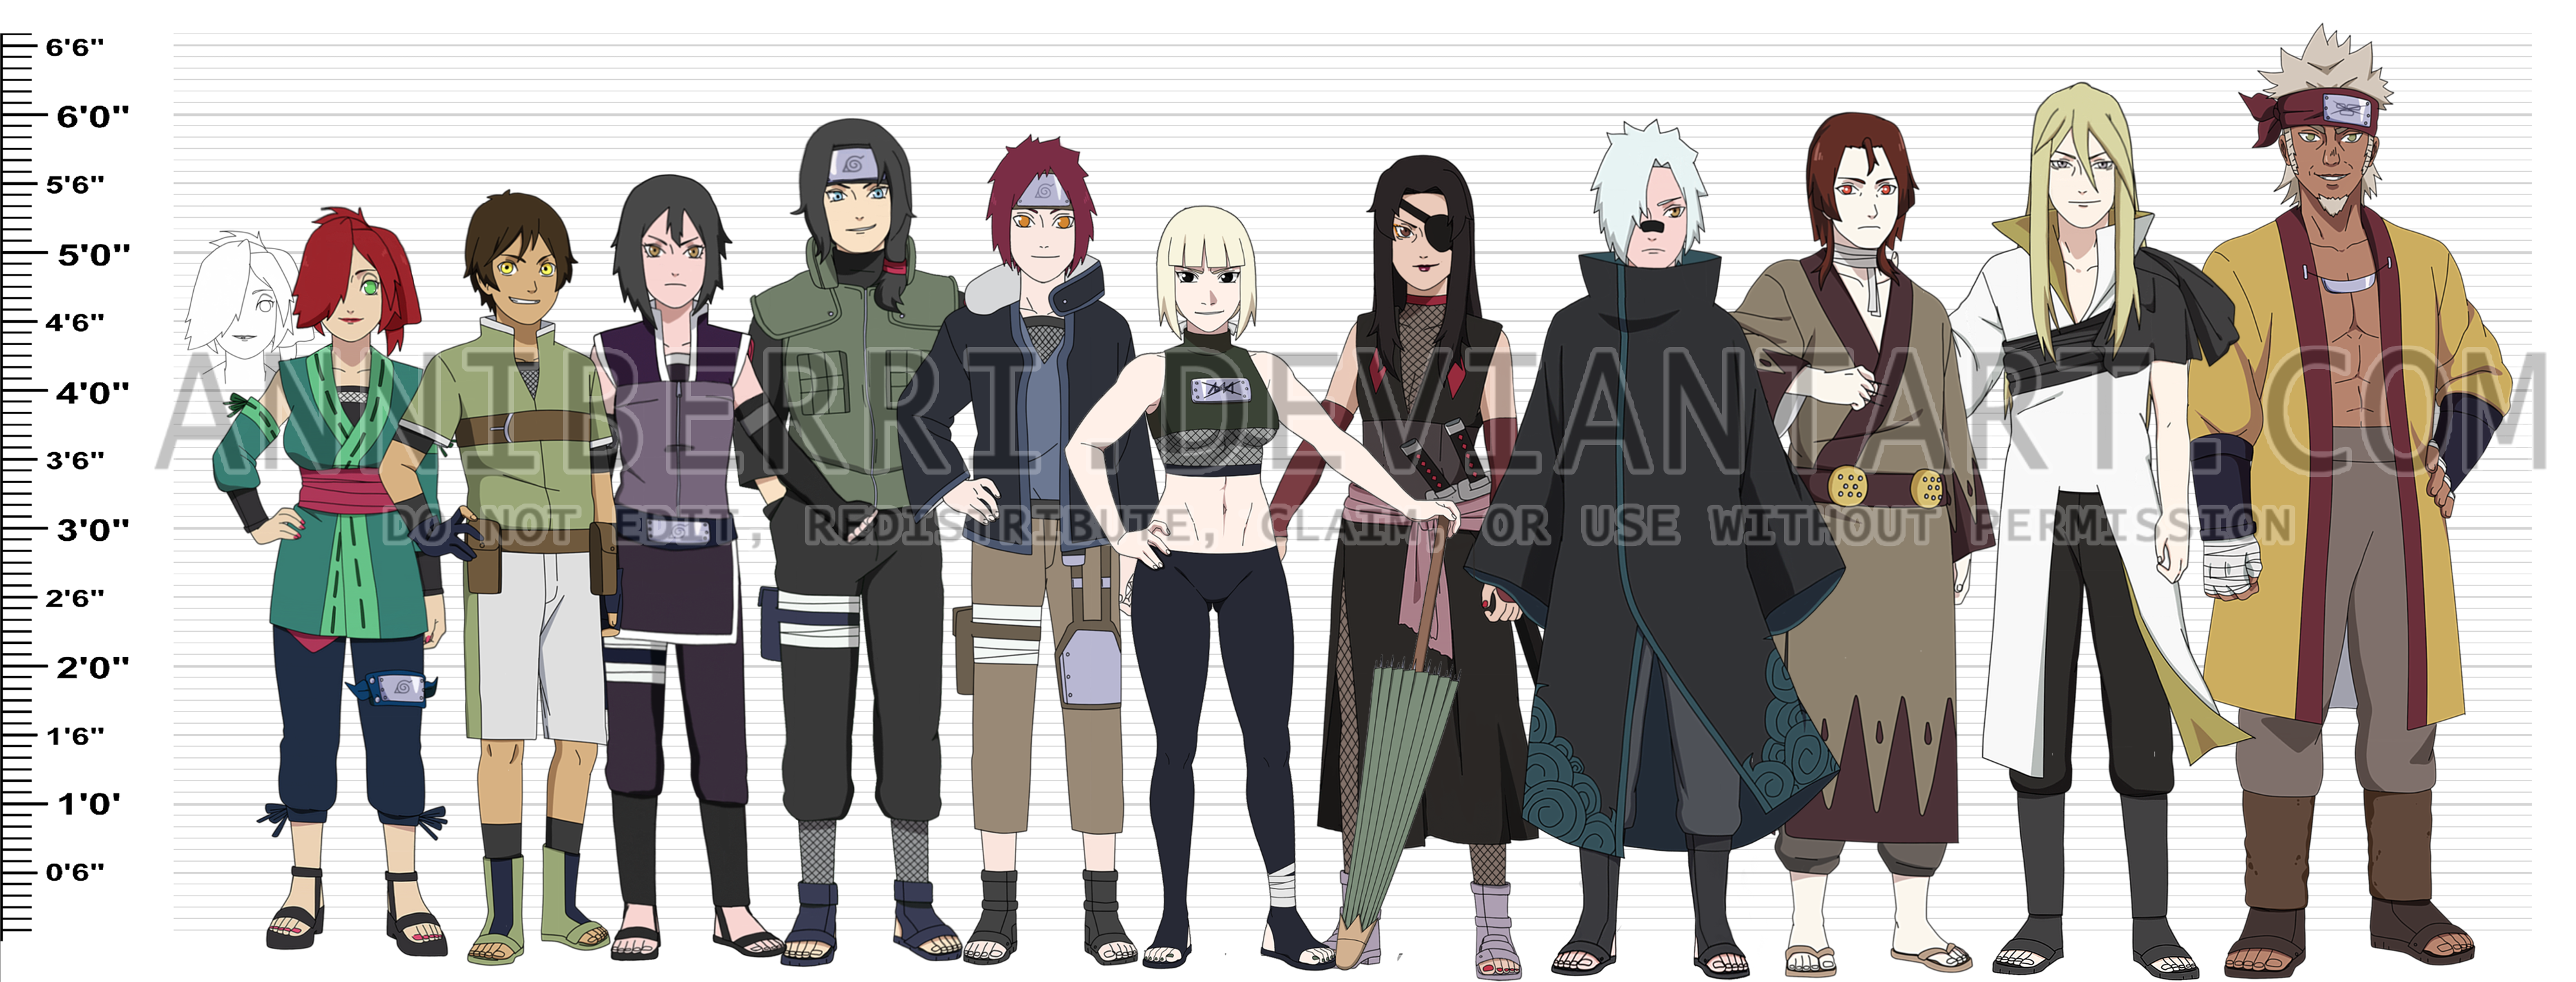 Anime Characters Over 6 Feet Tall : Remake naruto oc height chart by anniberri on deviantart